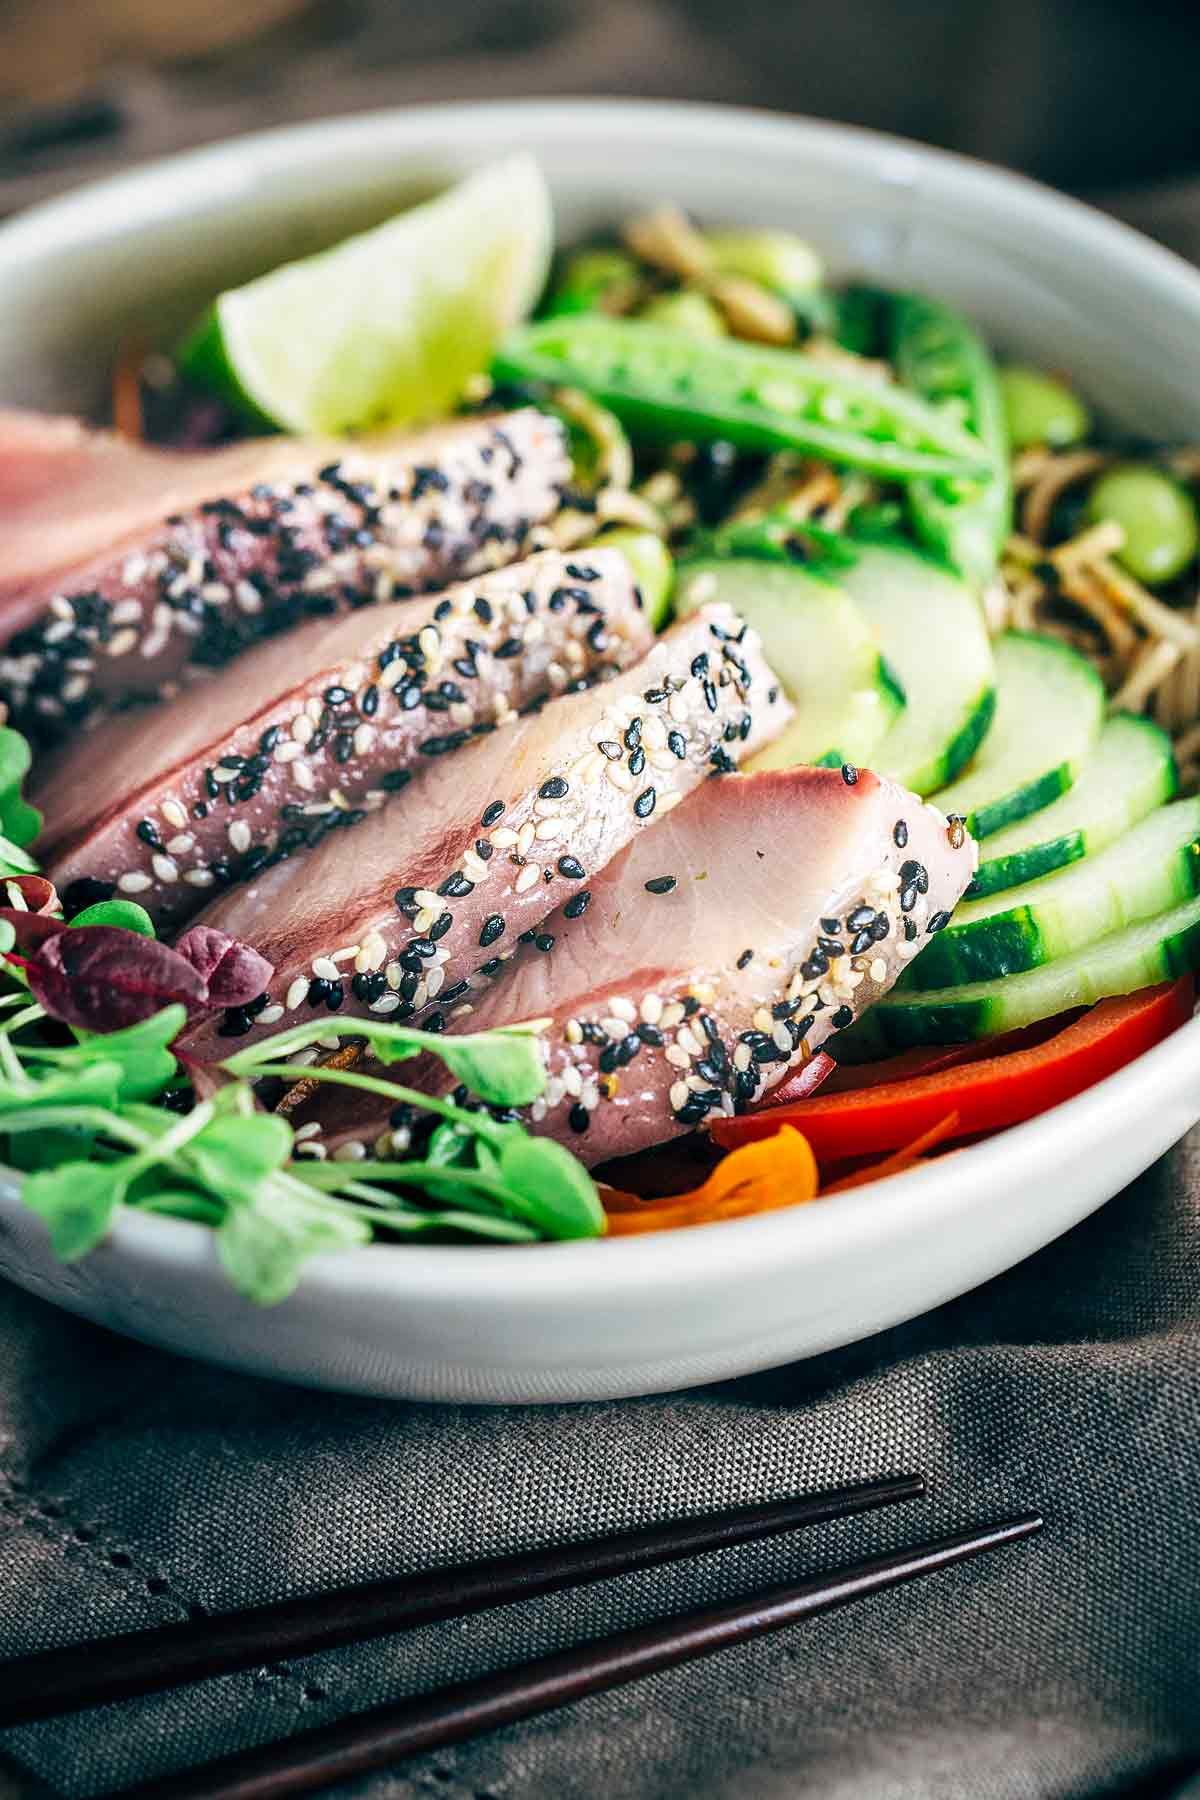 Sesame Crusted Hamachi with Edamame Soba Noodle Salad - A simple yet elegant meal featuring luxurious yellowtail served with savory noodles and crisp vegetables | jessicagavin.com